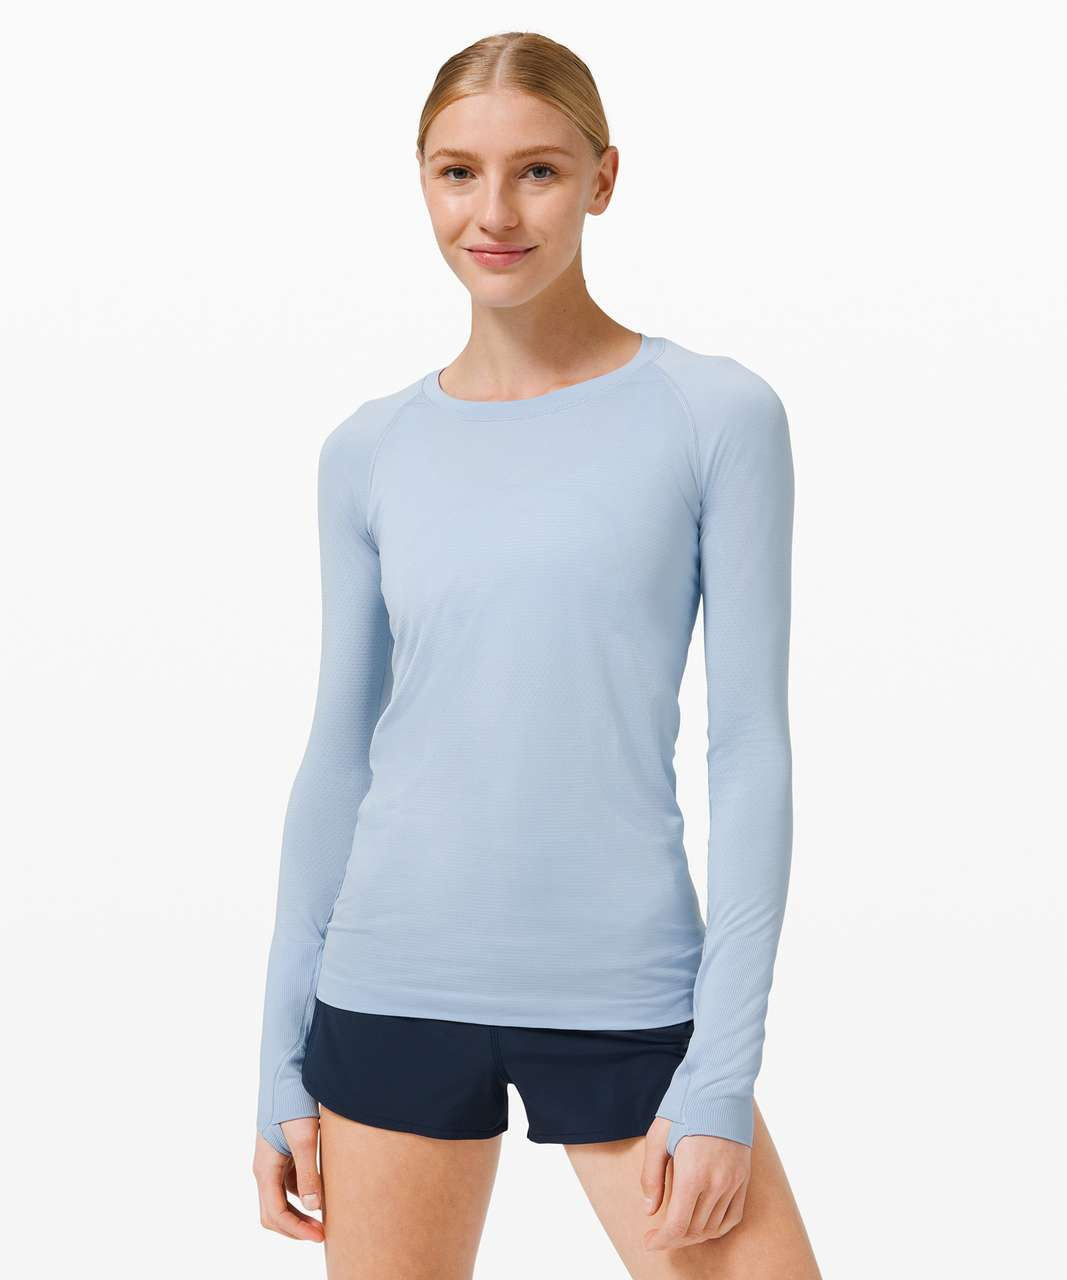 Lululemon Swiftly Tech Long Sleeve 2.0 - Blue Linen / Blue Linen